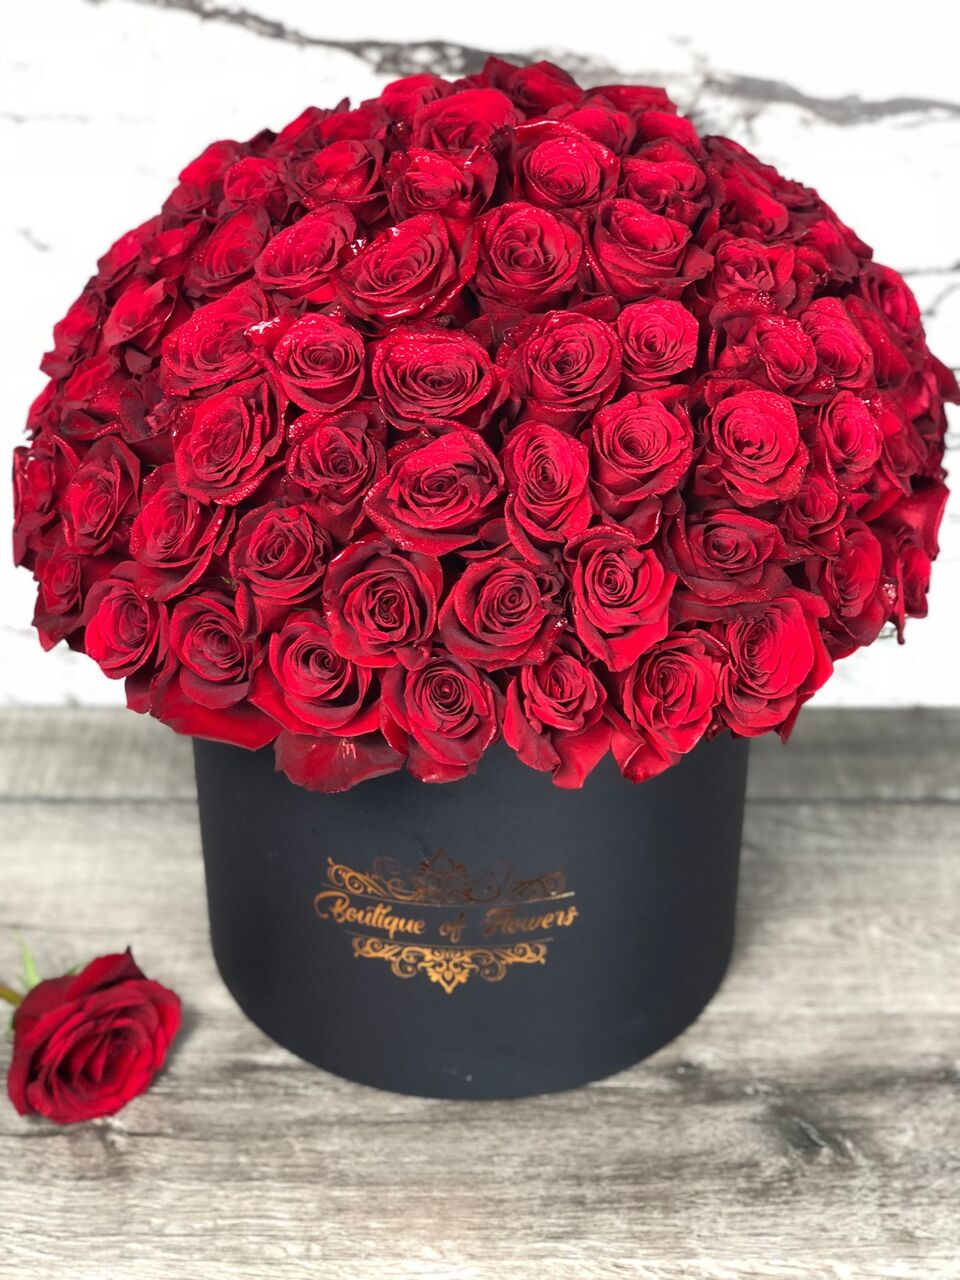 100 RED ROSE LARGE ROUND BOX